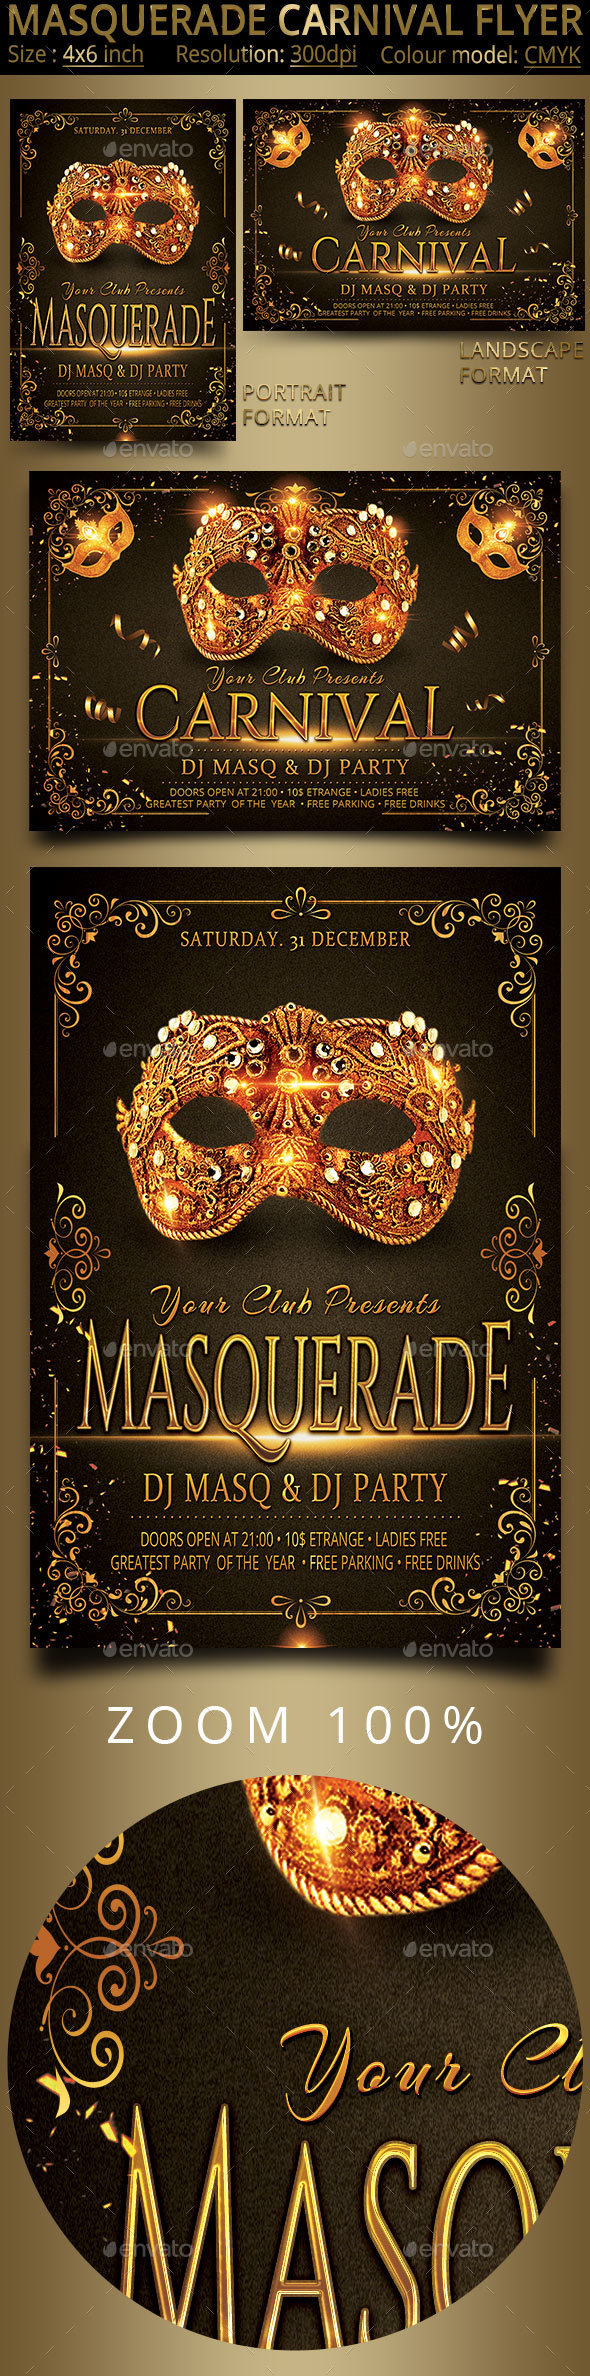 Masquerade Carnival Party Flyer - Events Flyers